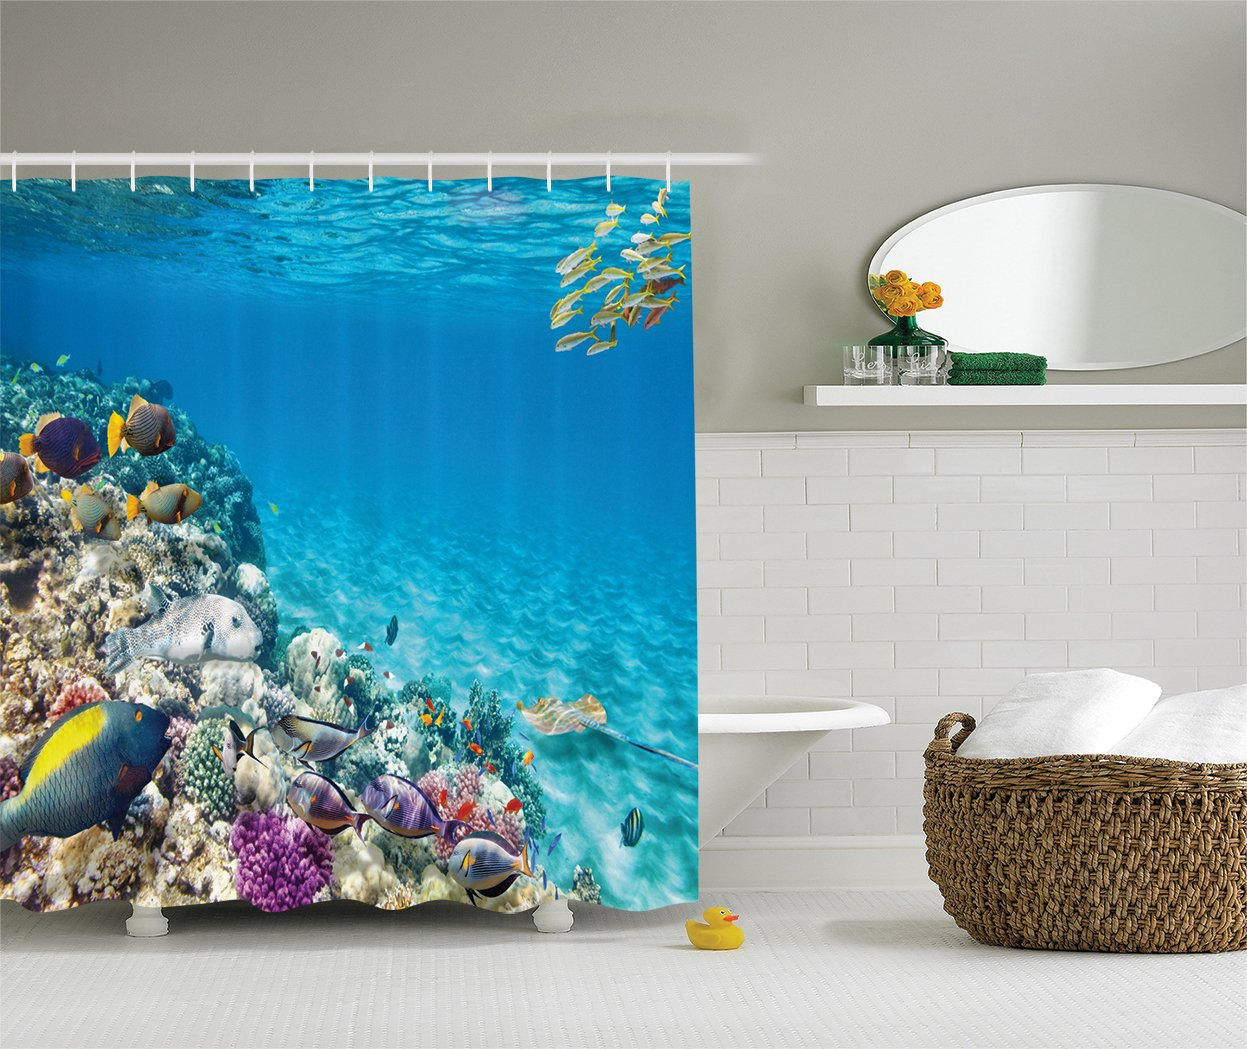 Ambesonne Ocean Decor Collection, Clear Underwater Sea Animal World with Corals and Tropical Fishes and a Stingray Egyptian Sea Picture, Polyester Fabric Bathroom Shower Curtain, Aqua Blue Yellow